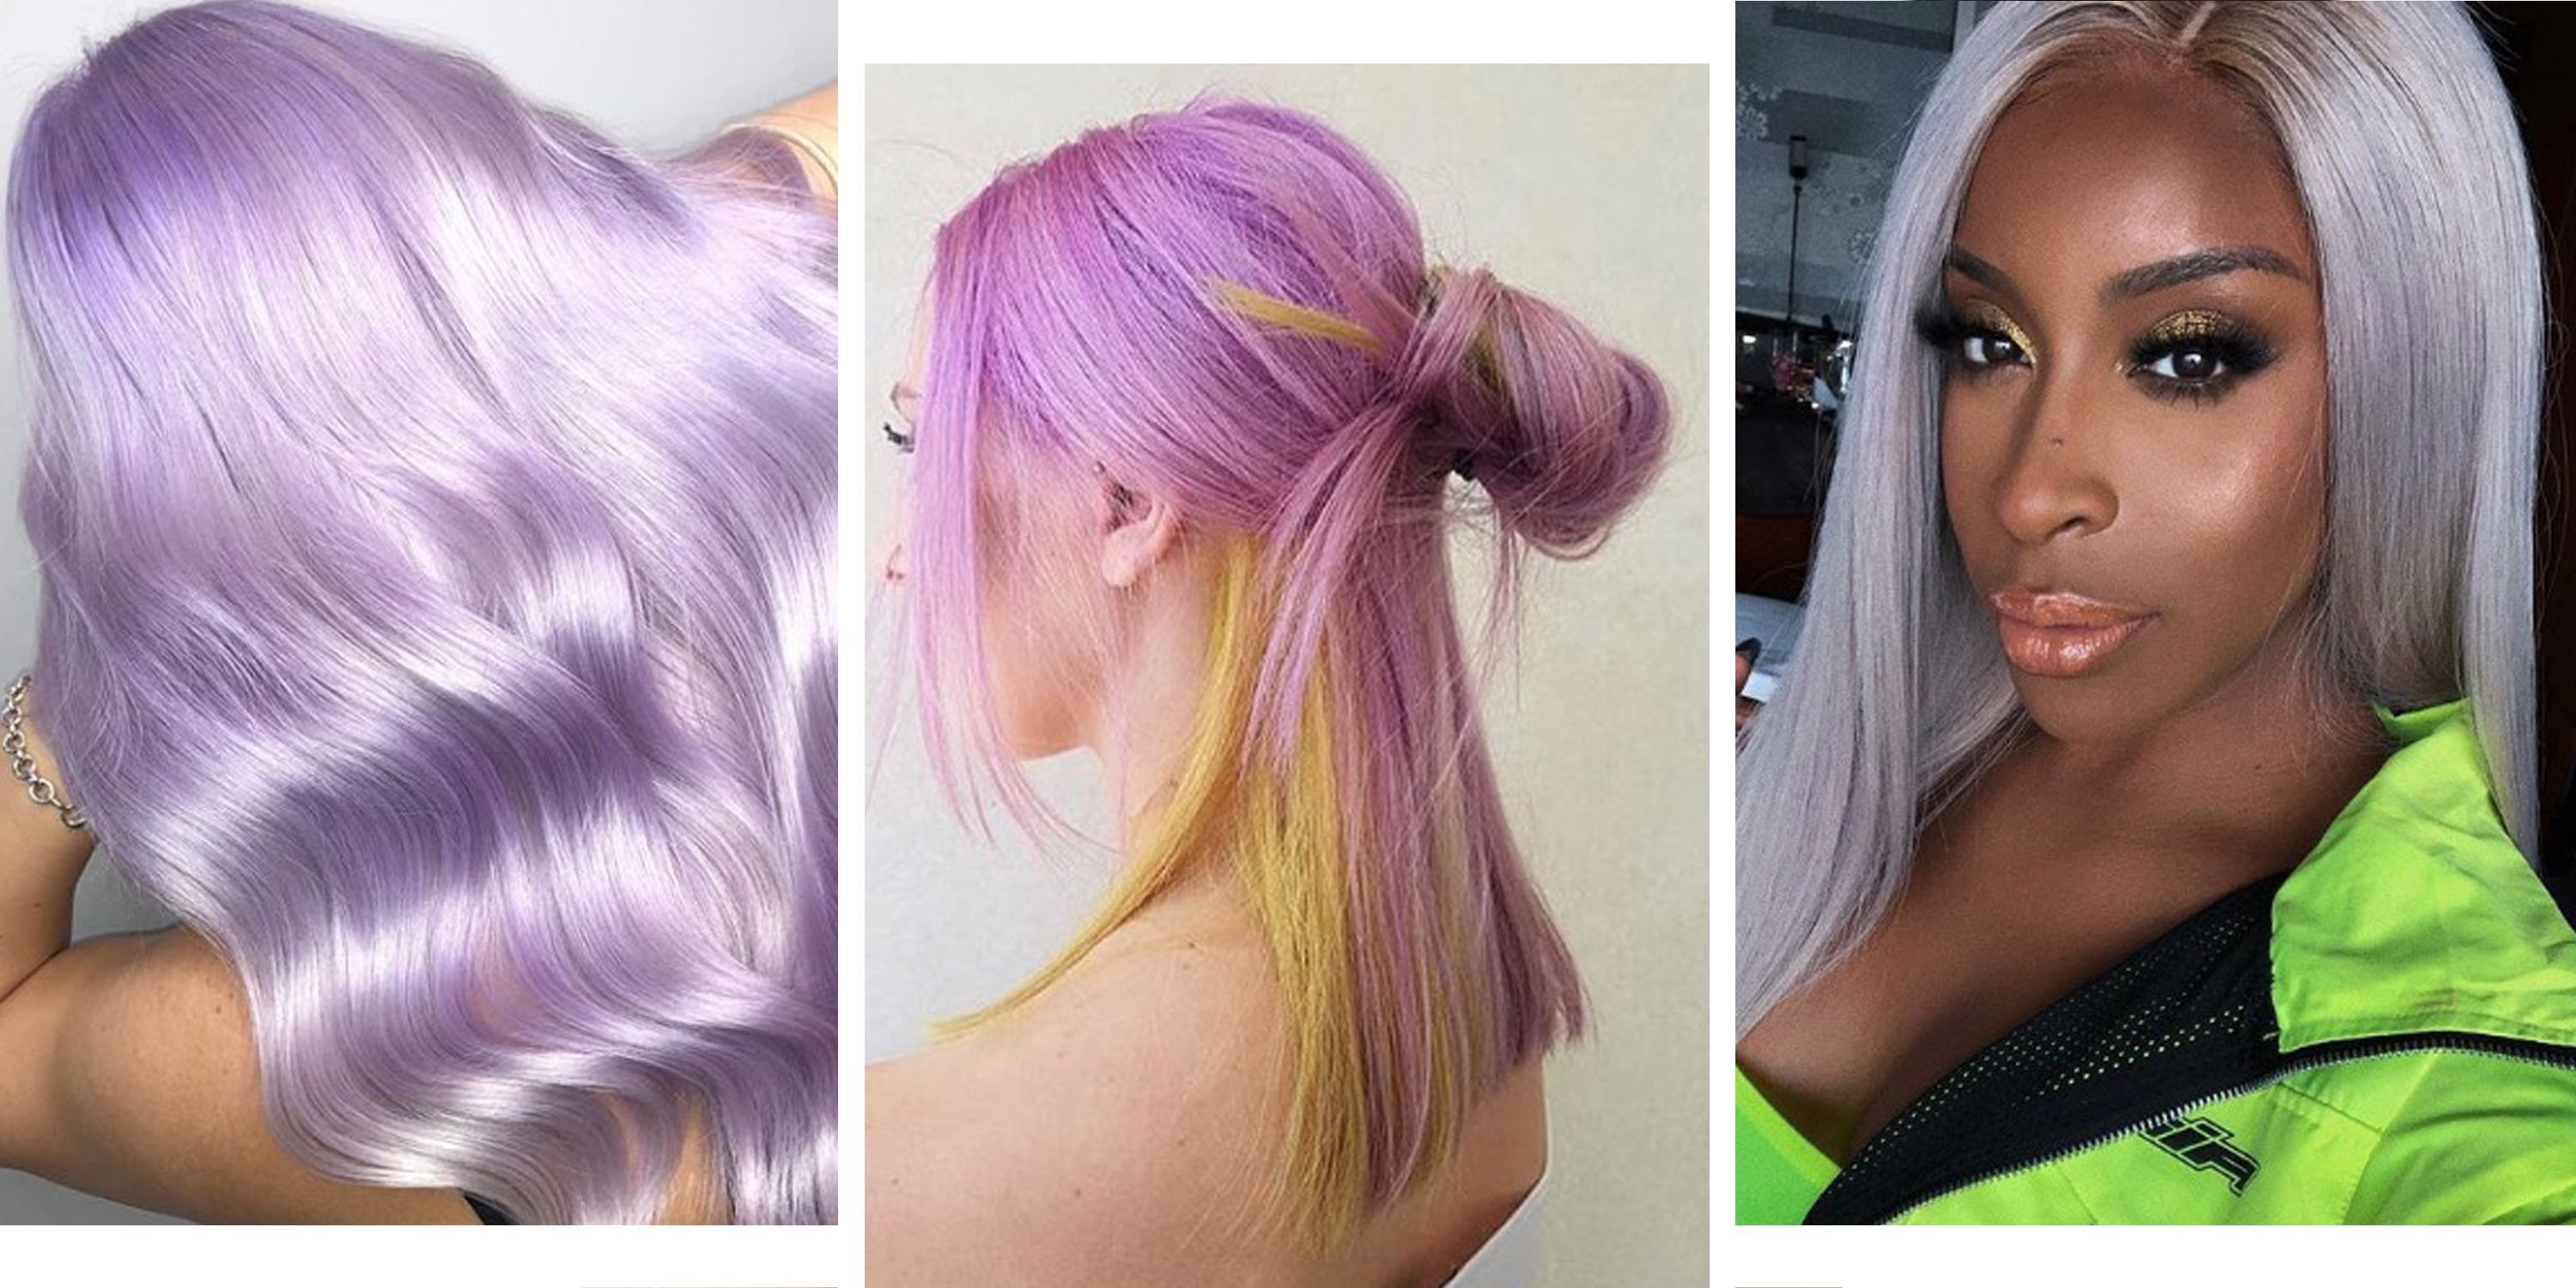 19 Shades of Lilac Hair to Inspire Your Pastel